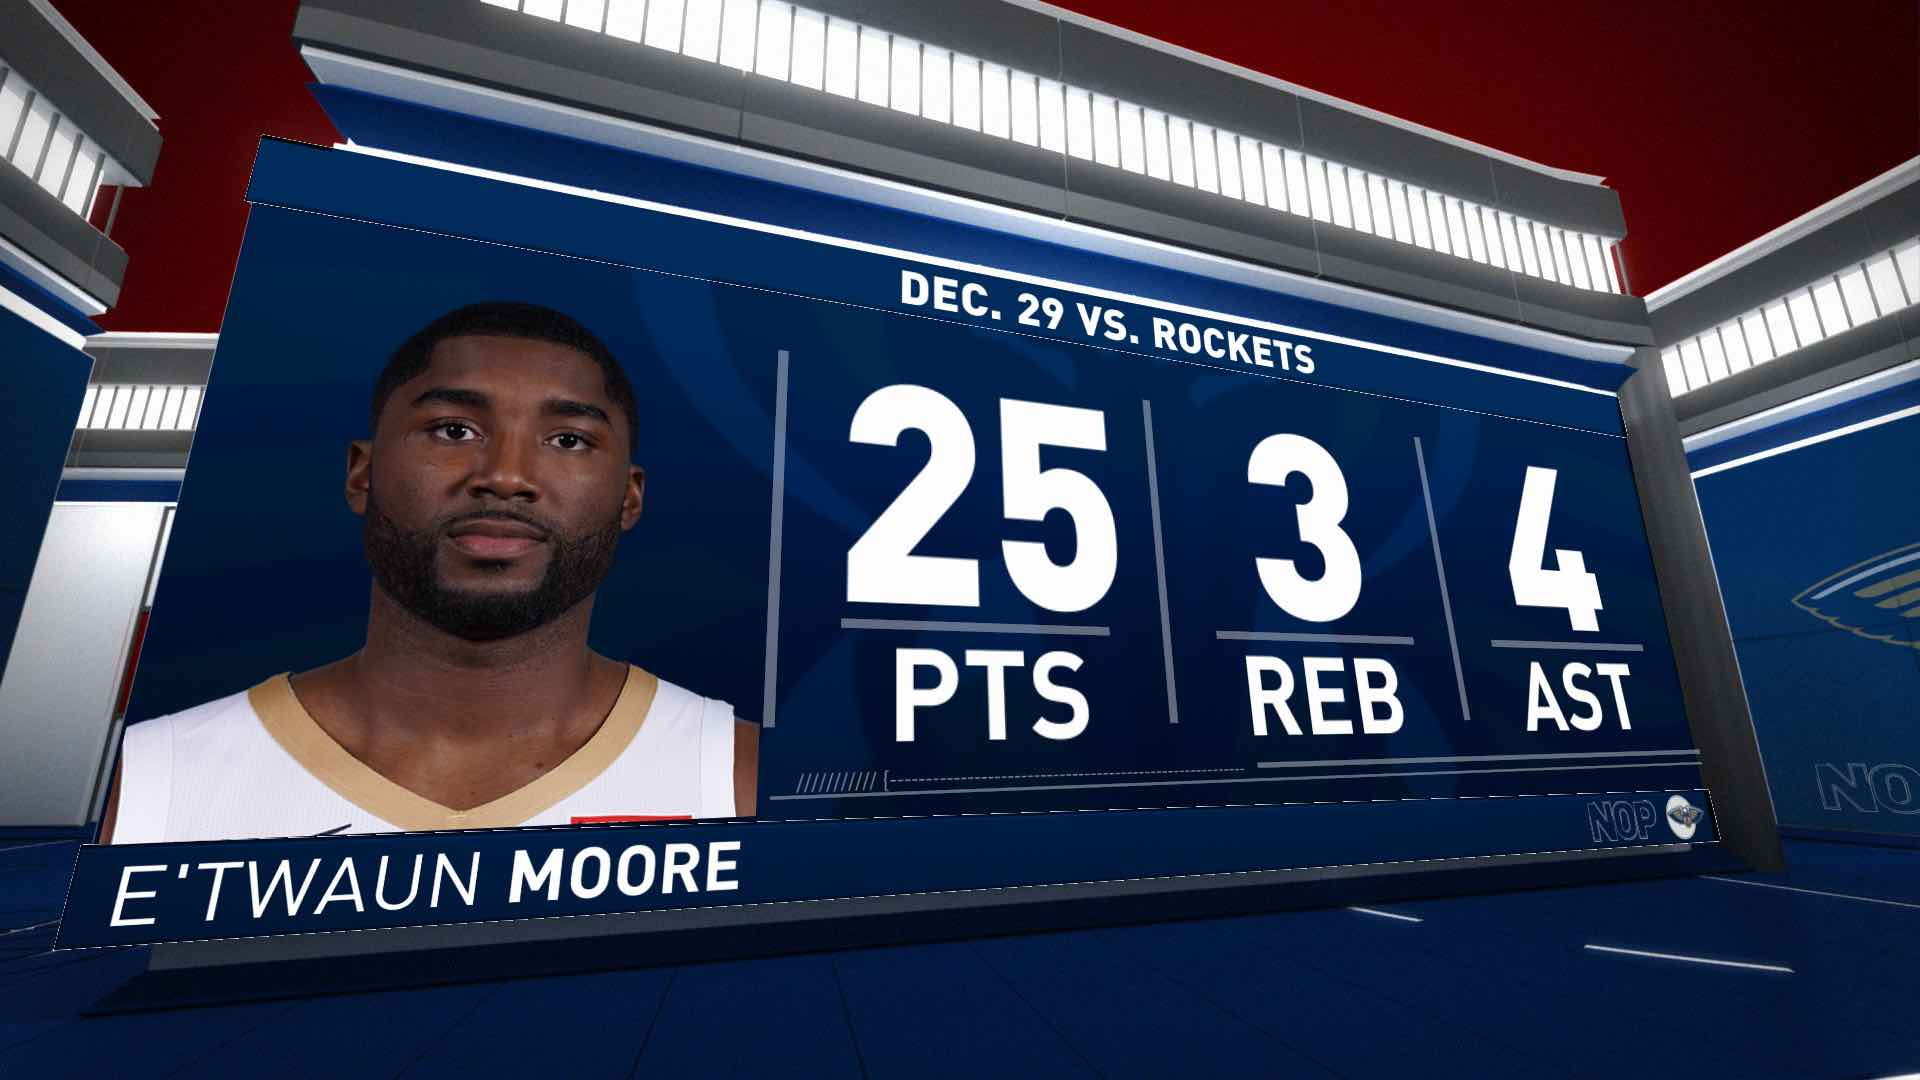 Highlights: E'Twaun Moore | Rockets vs. Pelicans